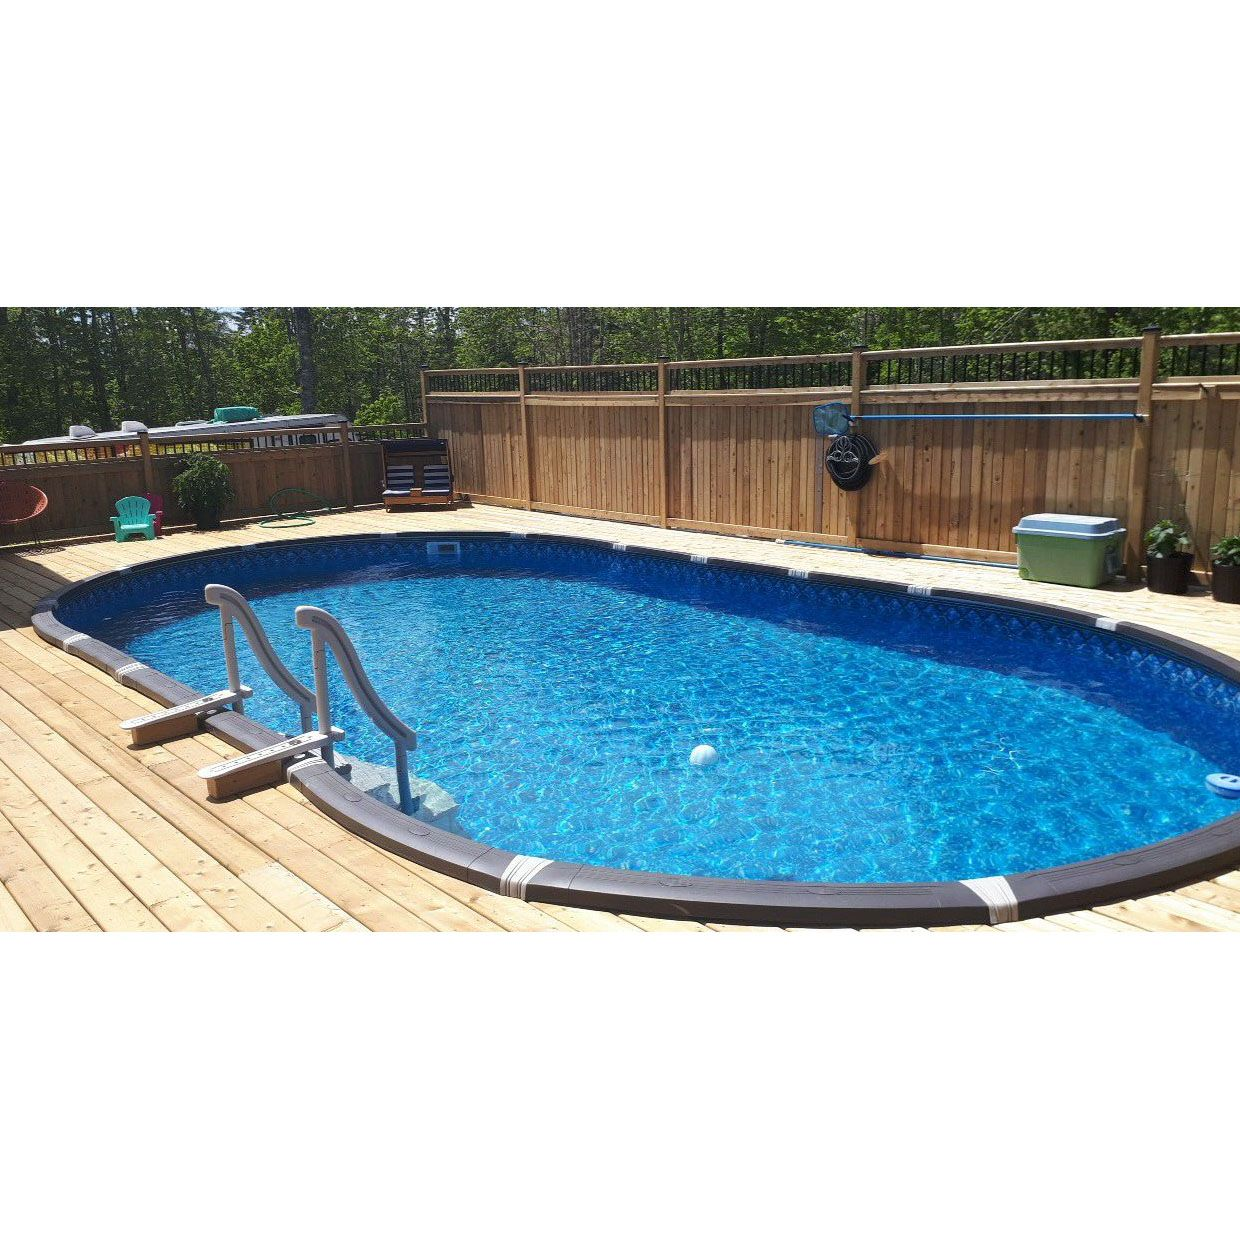 Element 15 X 30 Ft Oval Above Ground Pool With Liner And Skimmer